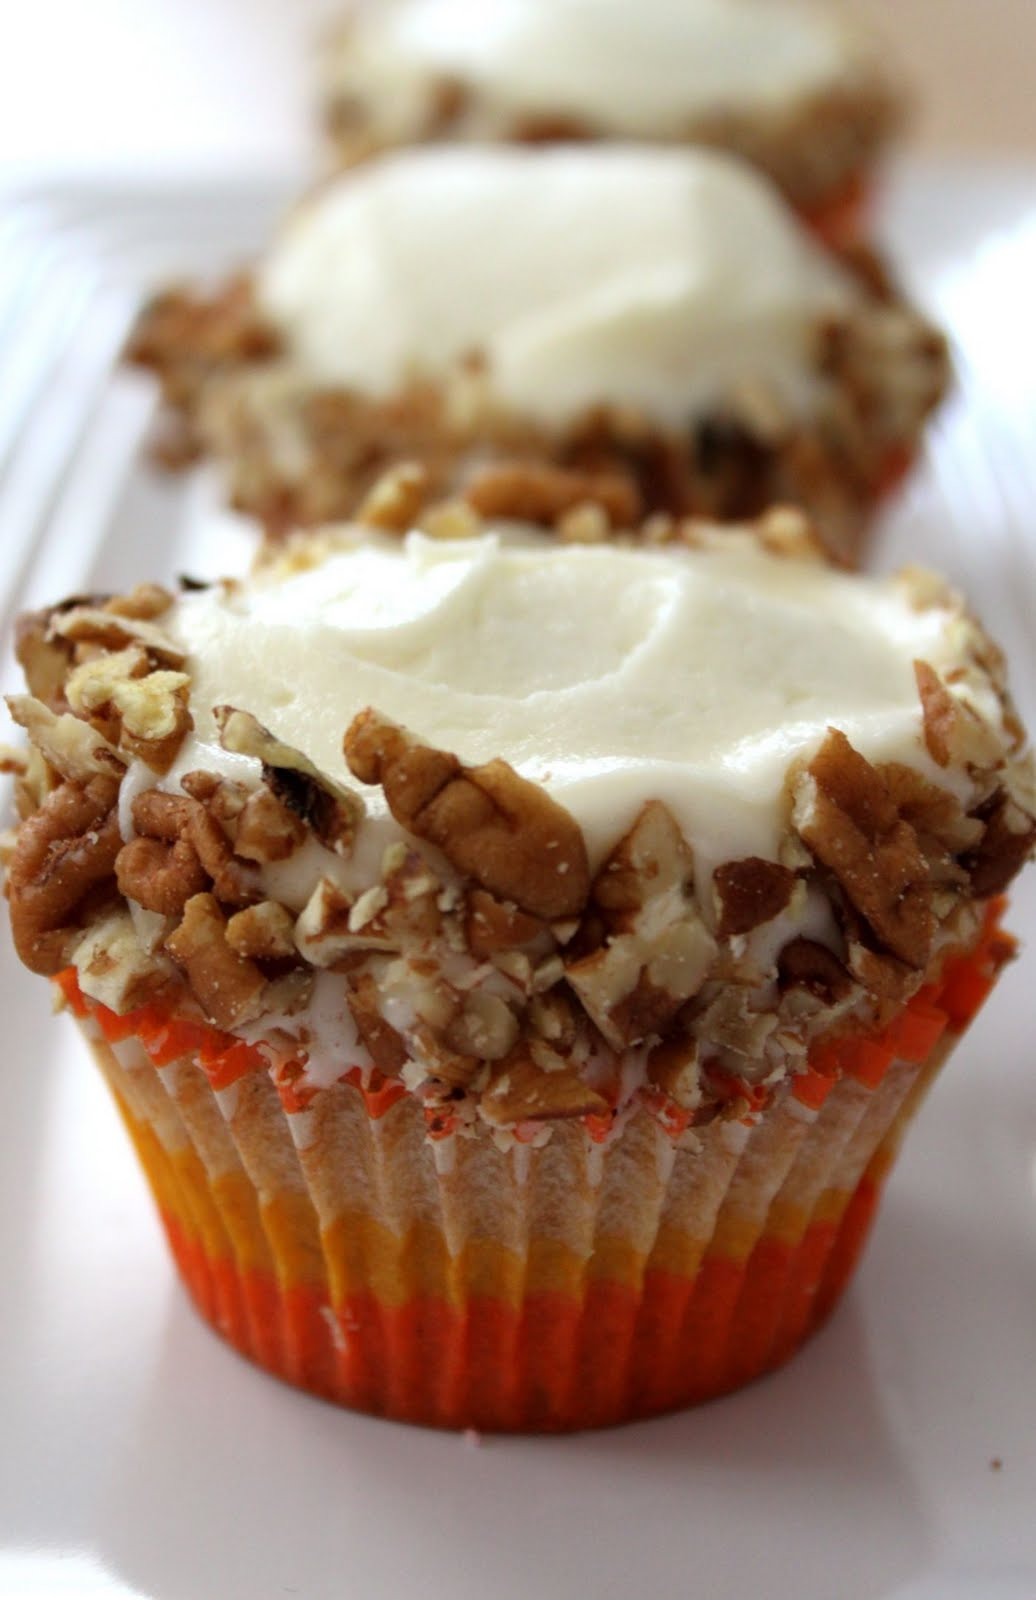 Carrot Cupcakes With Cream Cheese Icing Recipe — Dishmaps